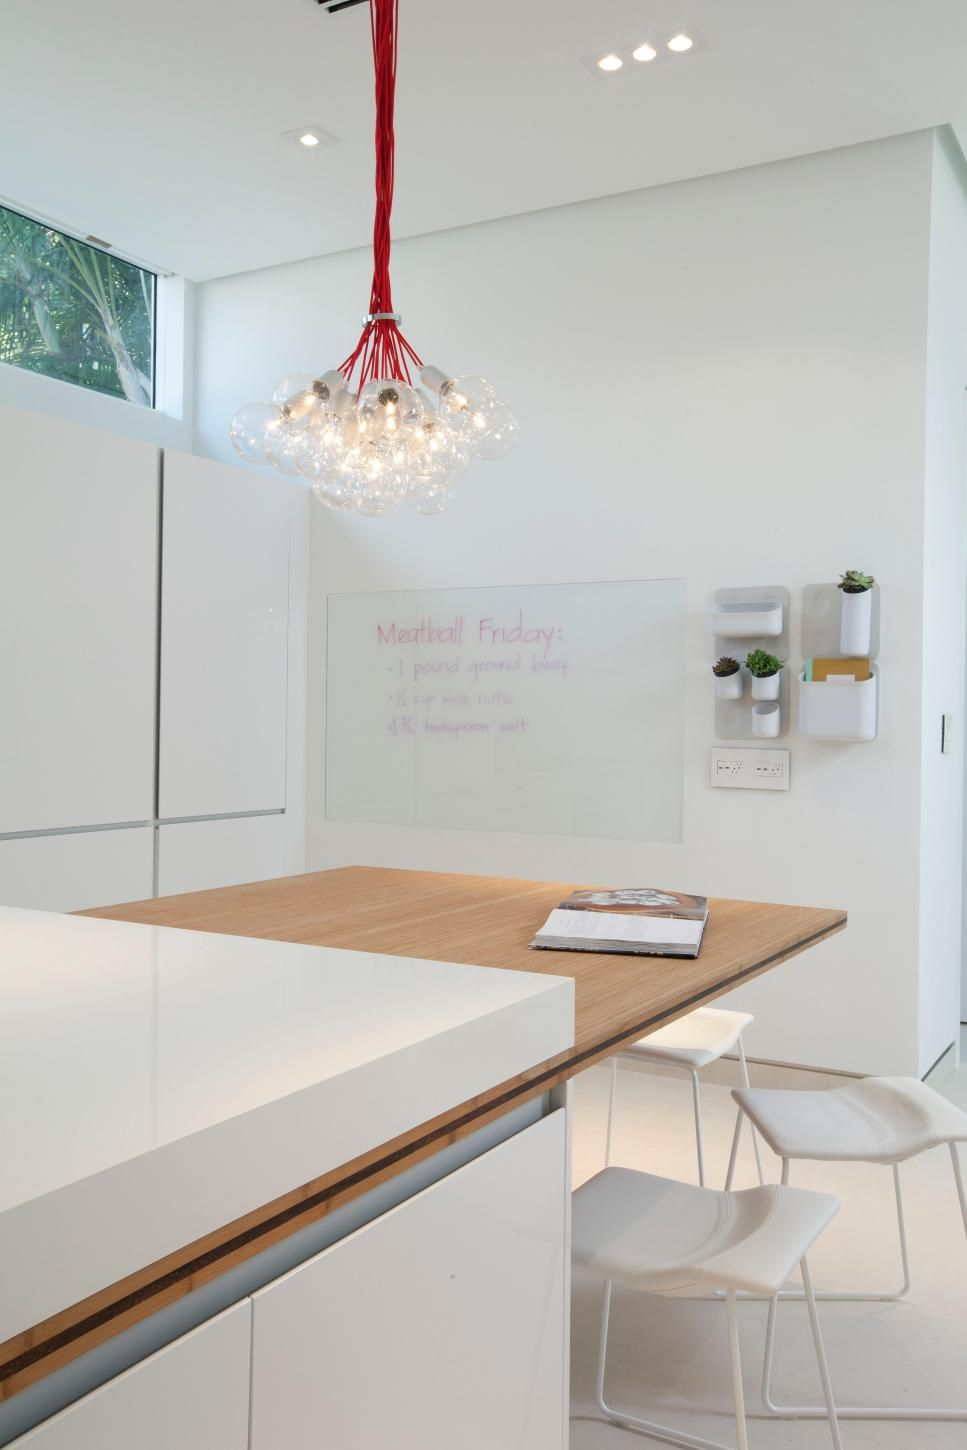 writable glass on the wall for kitchen notes. Rooms Viewer | HGTV ...